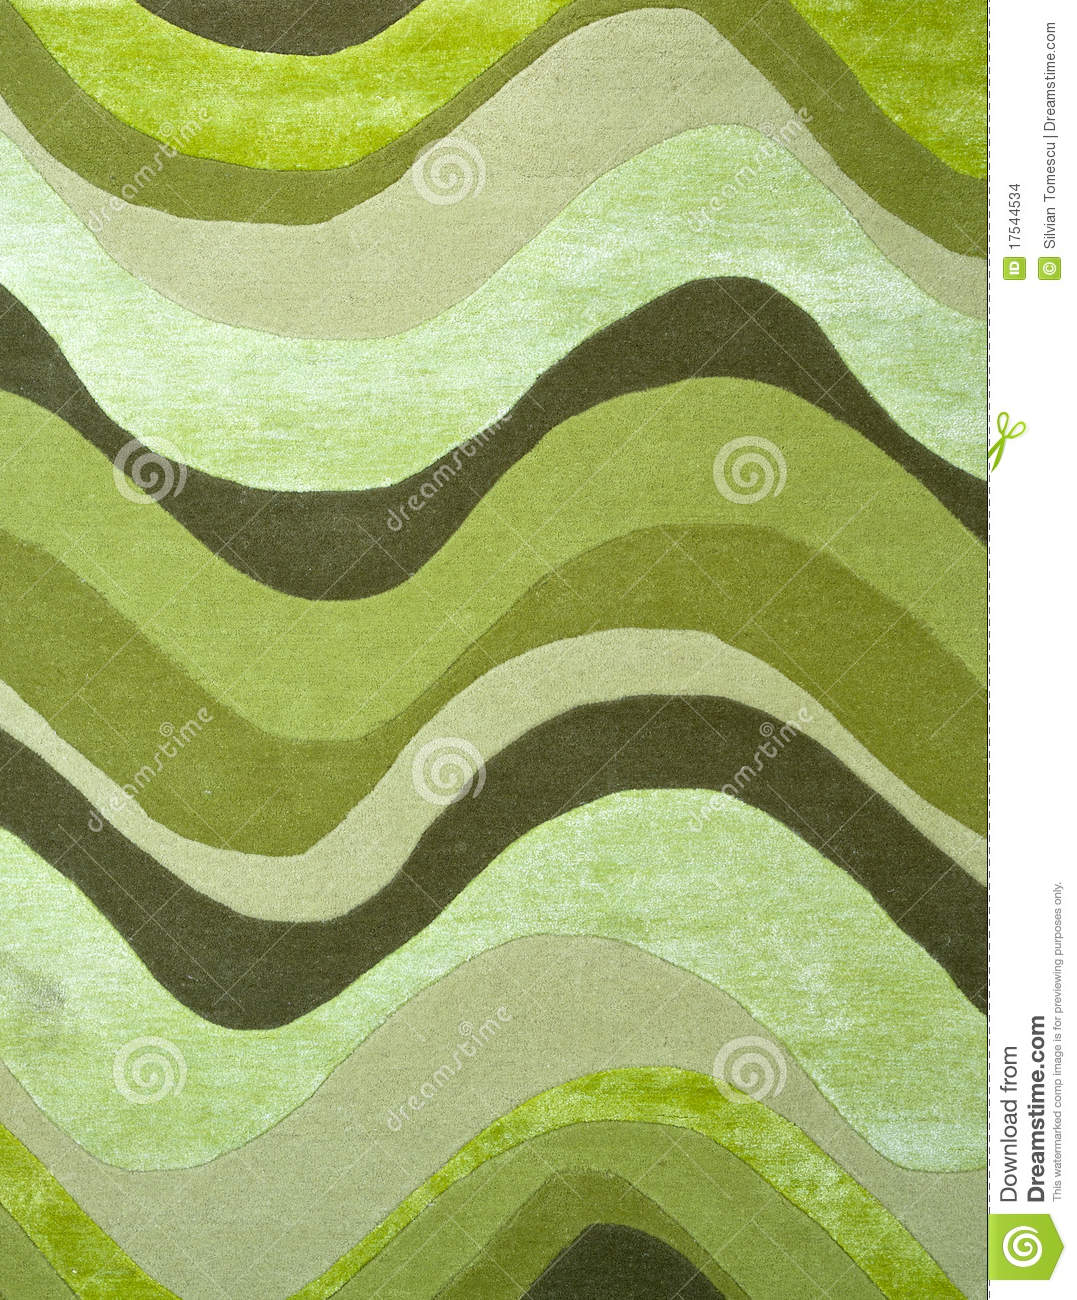 Waves carpet texture stock photo image of fiber for Light green carpet texture